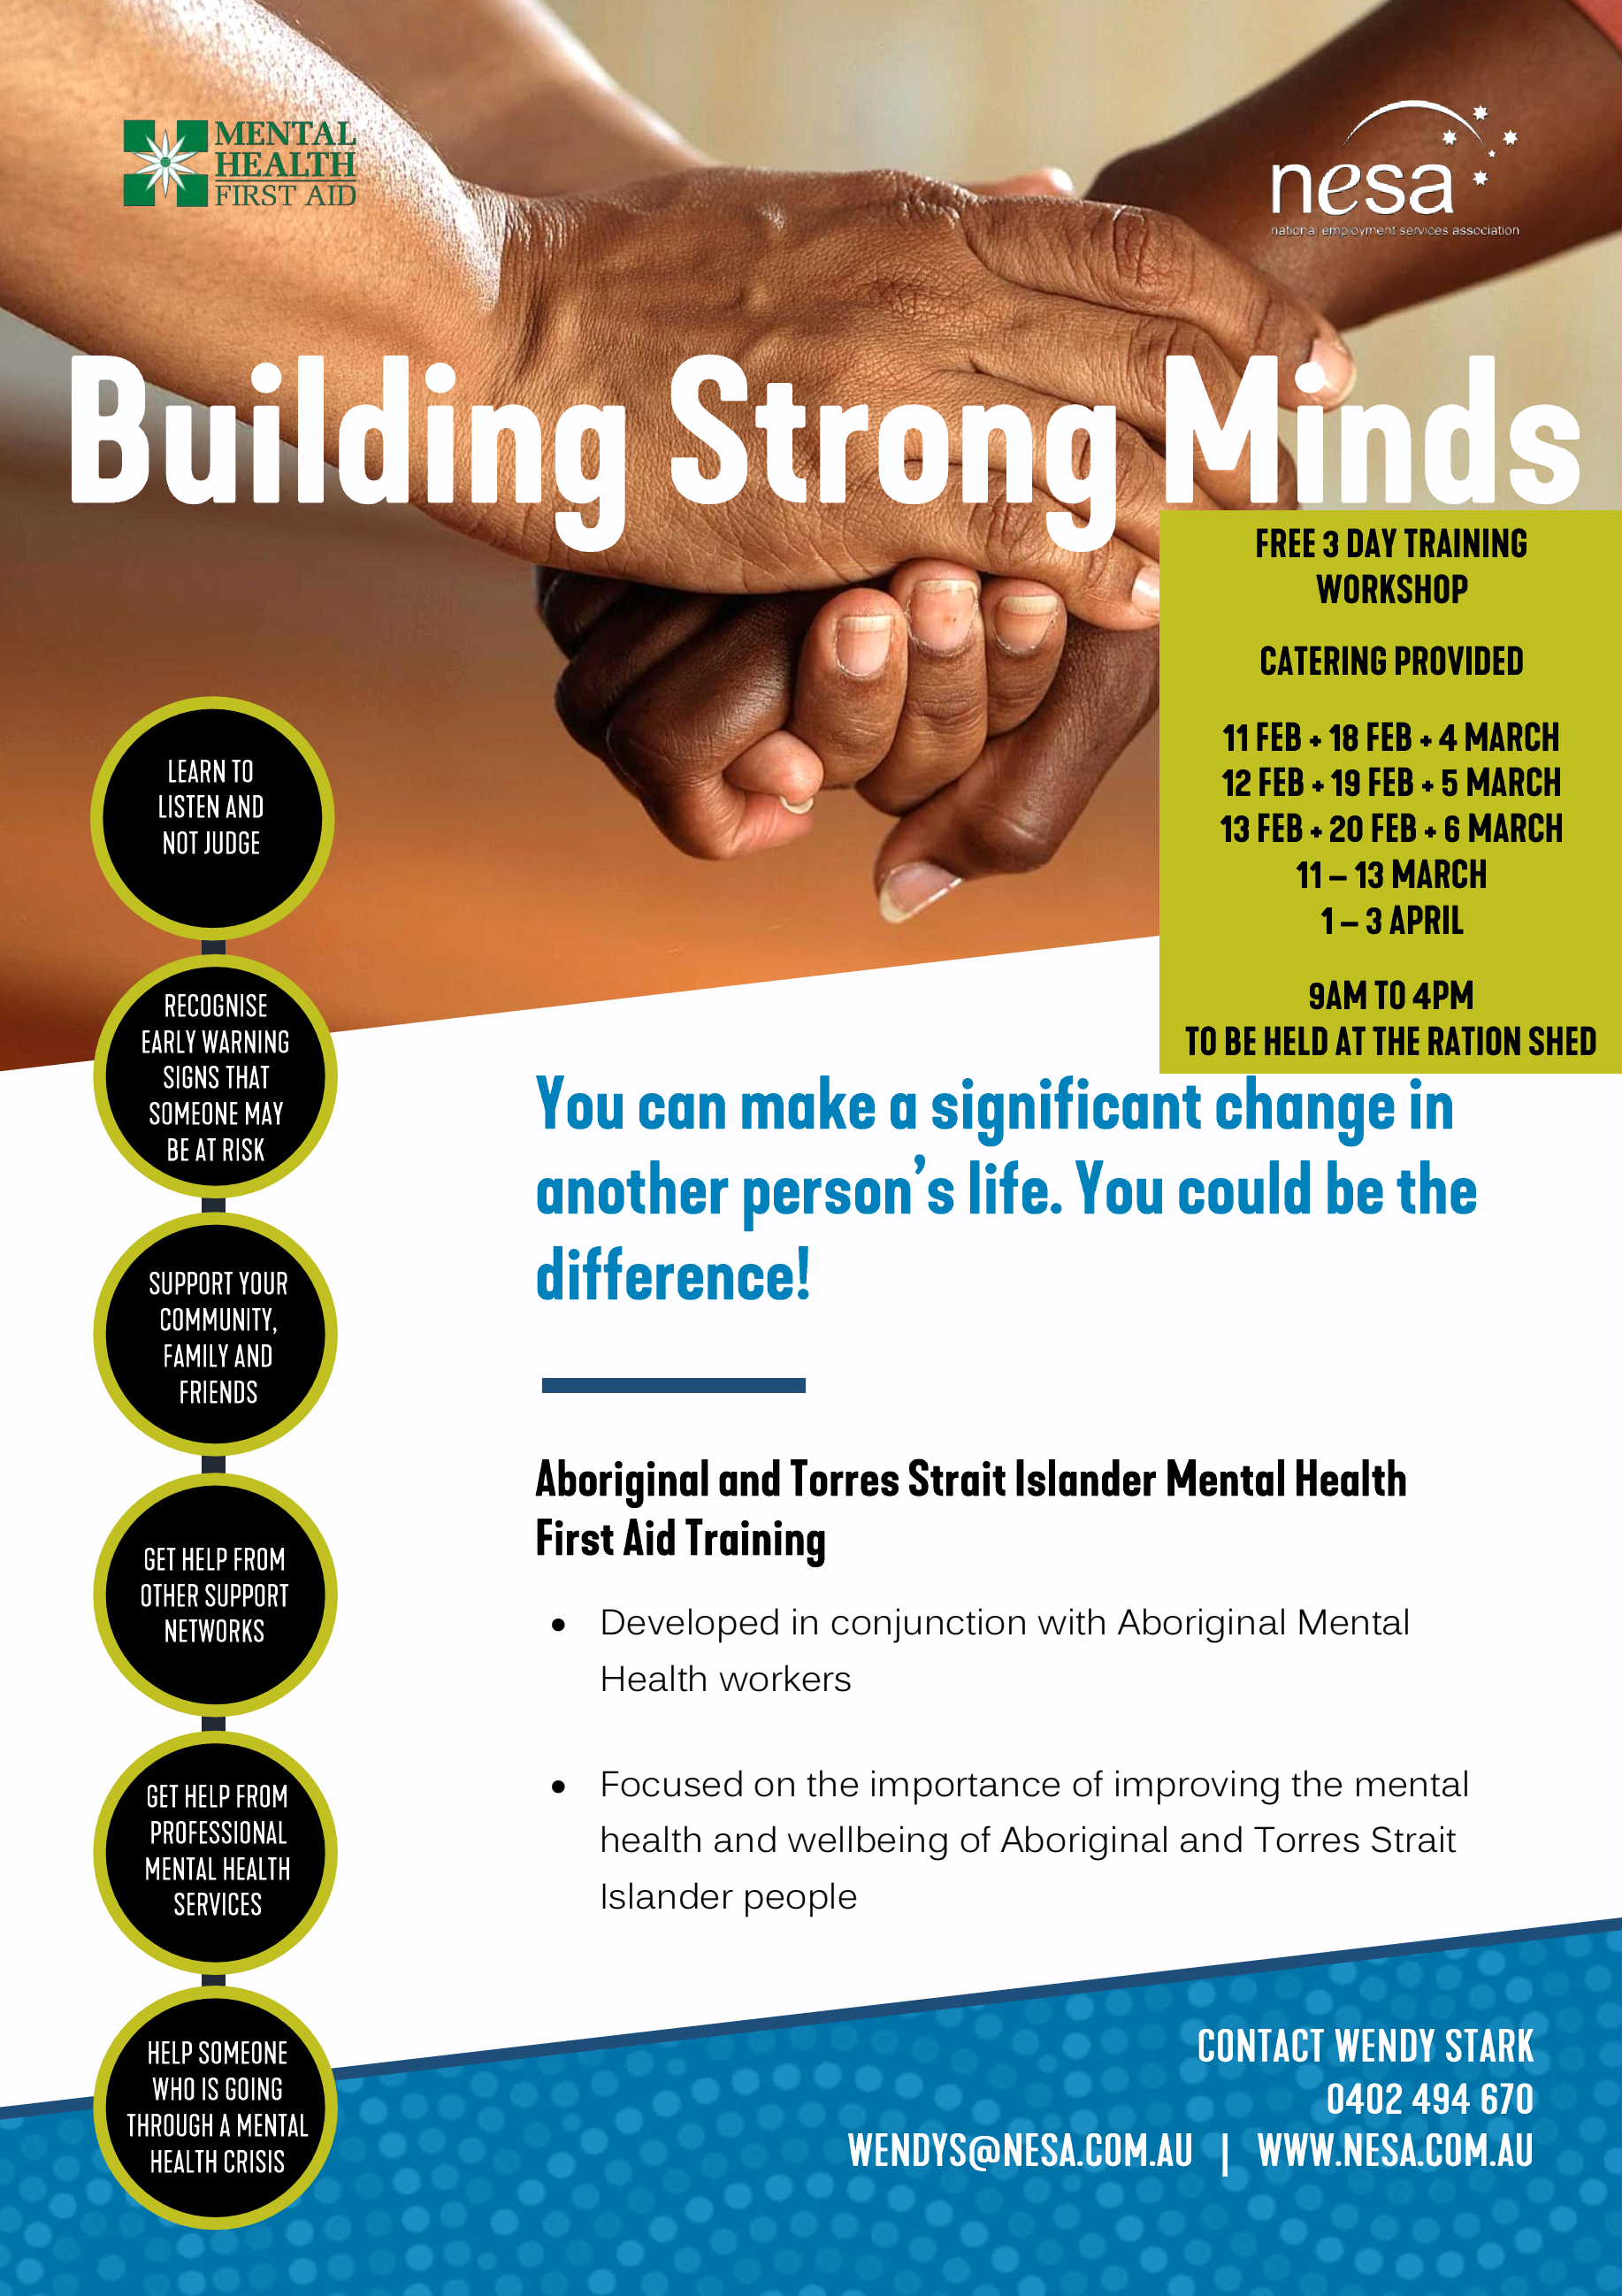 Building Strong Minds - Aboriginal Mental Health First Aid Training 2018 Cherbourg - 2019 Dates.jpg